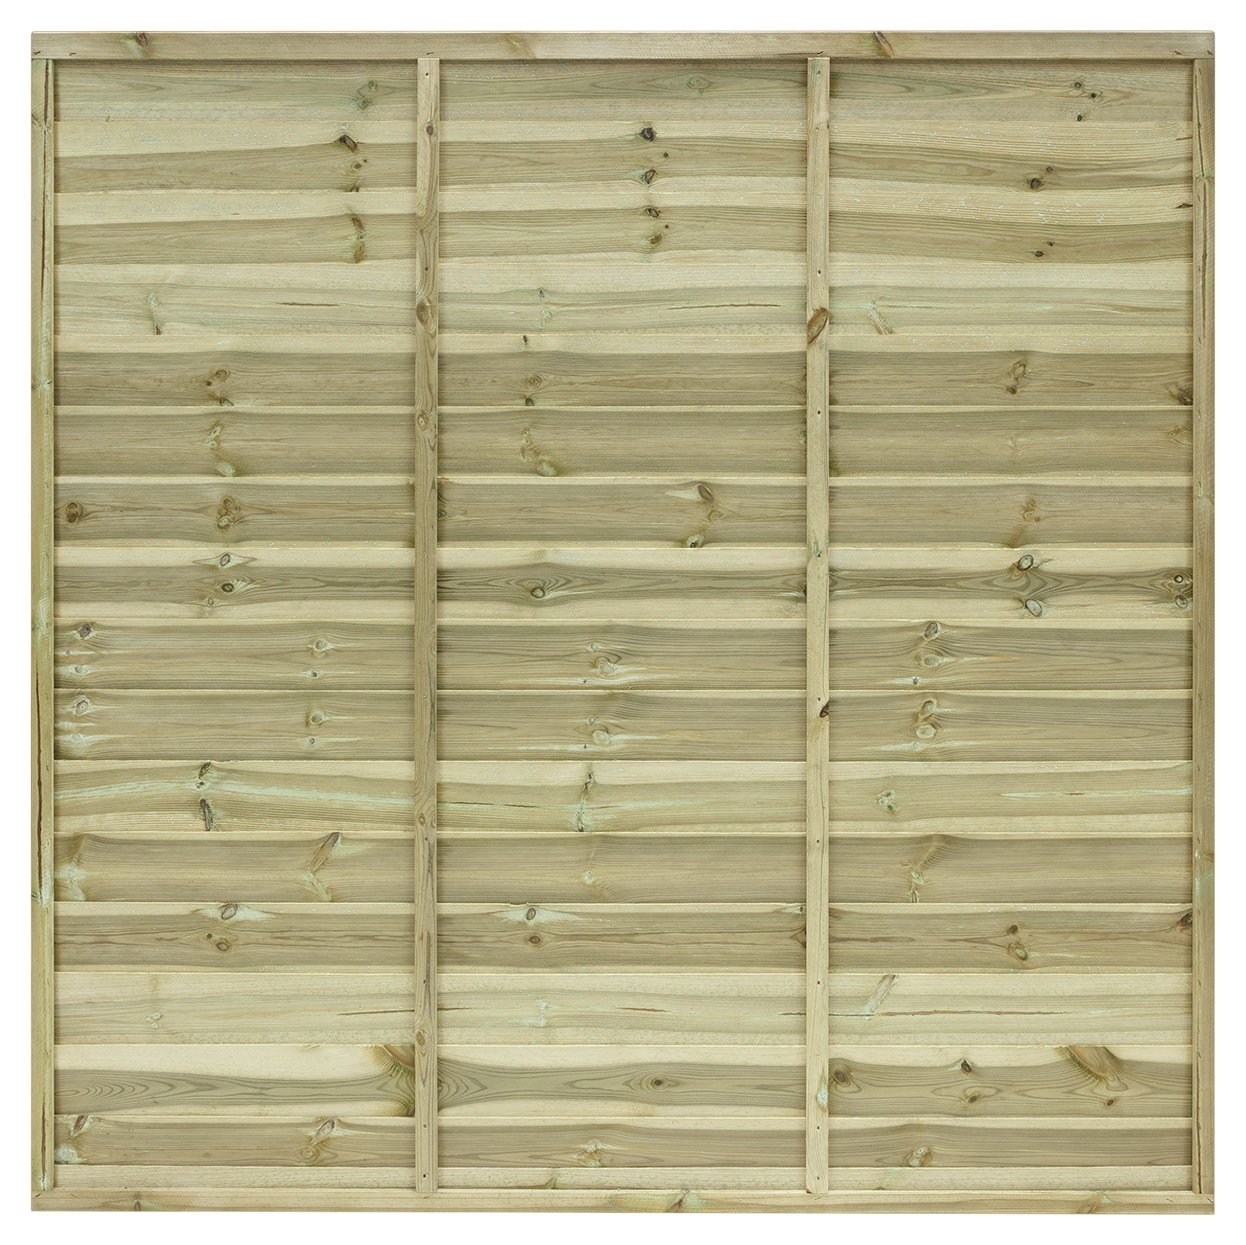 Grange Fencing 1.5m Ultimate Fence Panel - Pack of 5. lowest price